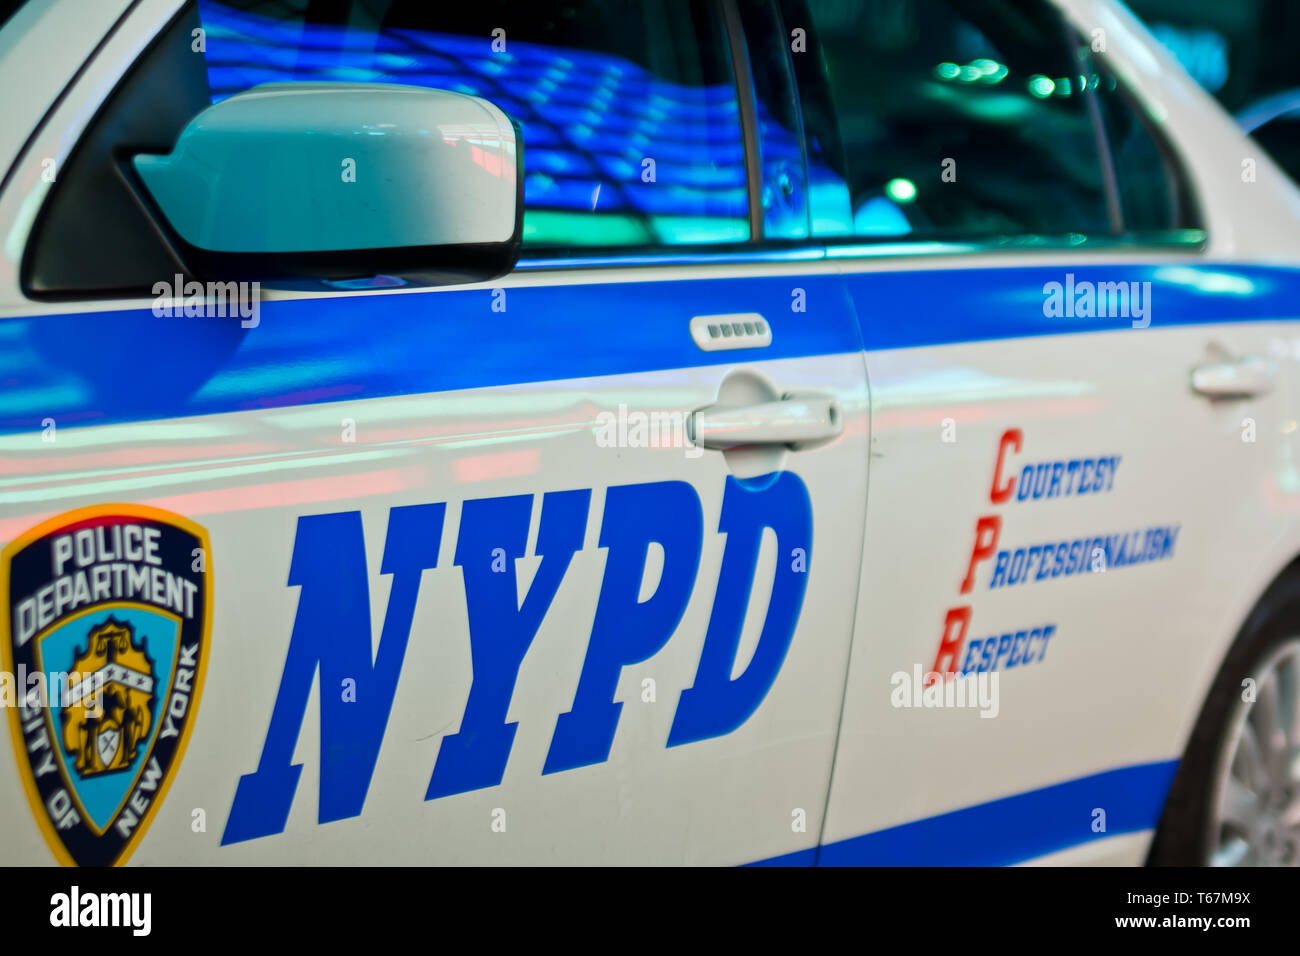 393b1ce4bacae Nypd Police Badge Stock Photos   Nypd Police Badge Stock Images - Alamy